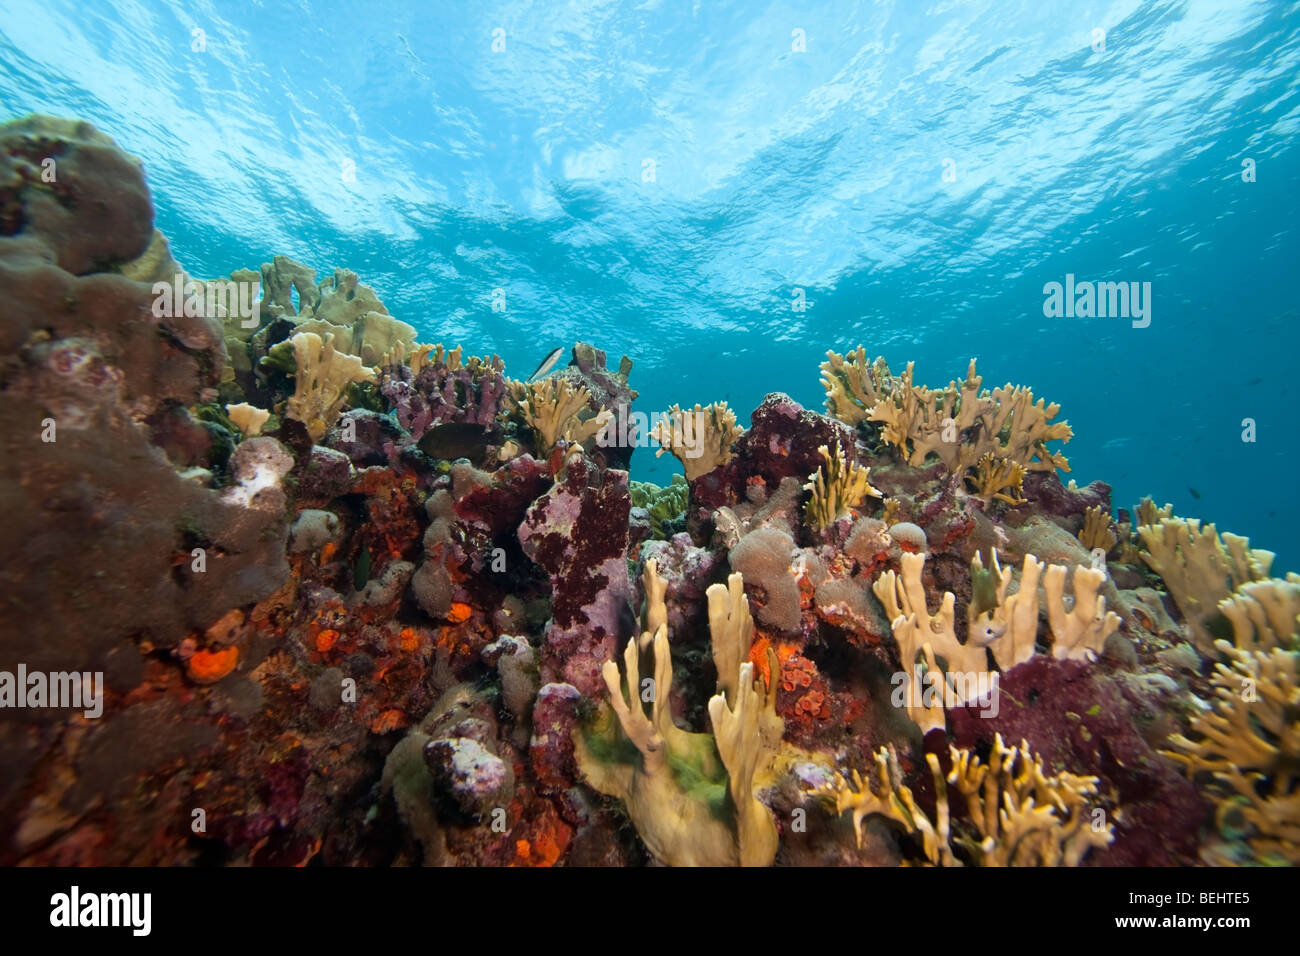 Blade Fire Coral (Millepora complanata) on a tropical reef, Bonaire, Netherlands Antilles. - Stock Image